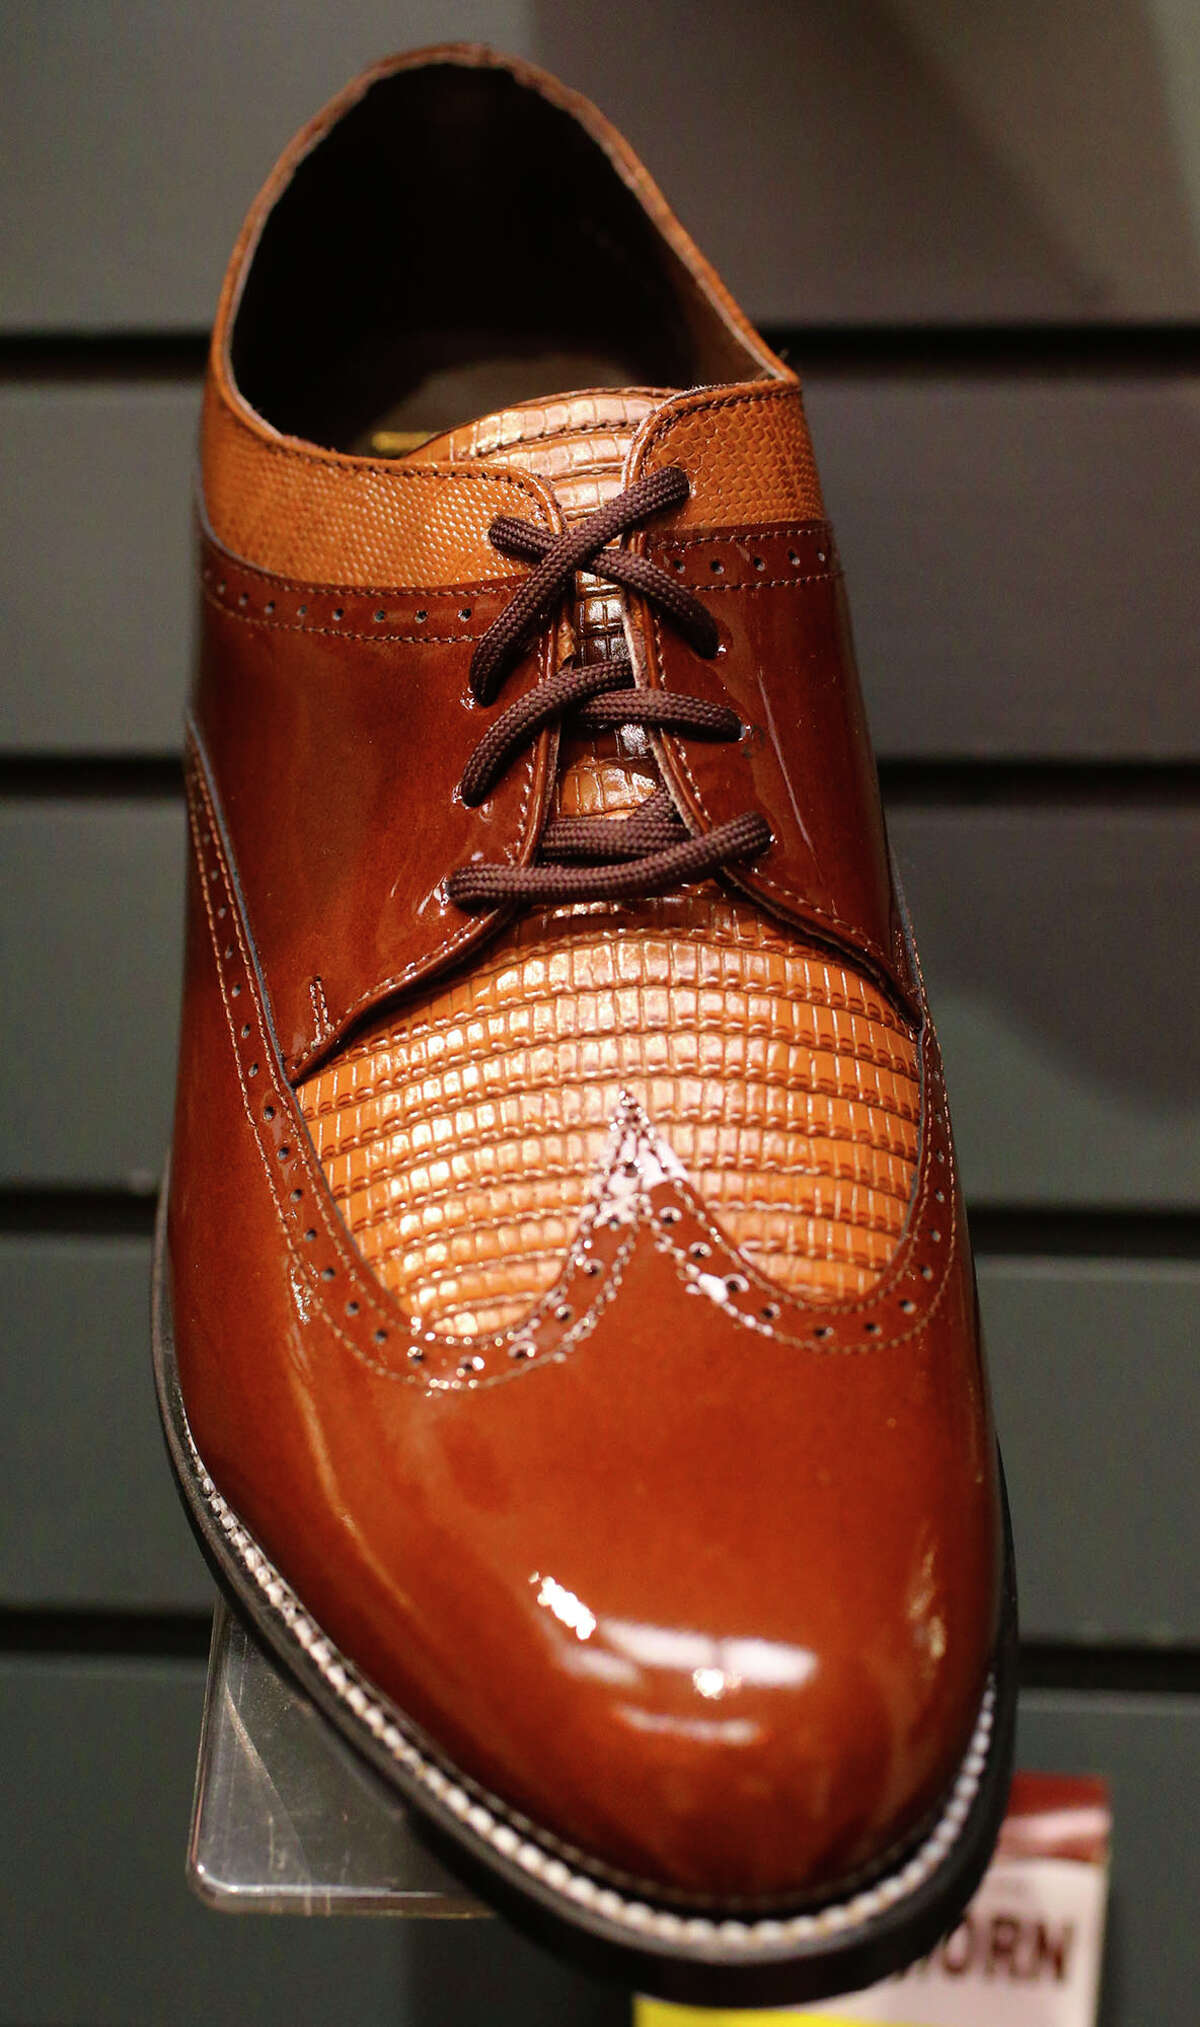 This is an example of the Stacy Adams shoes custom made for Penner's cothing store in downtown San Antonio. The store is celebrating its 100th year in business.